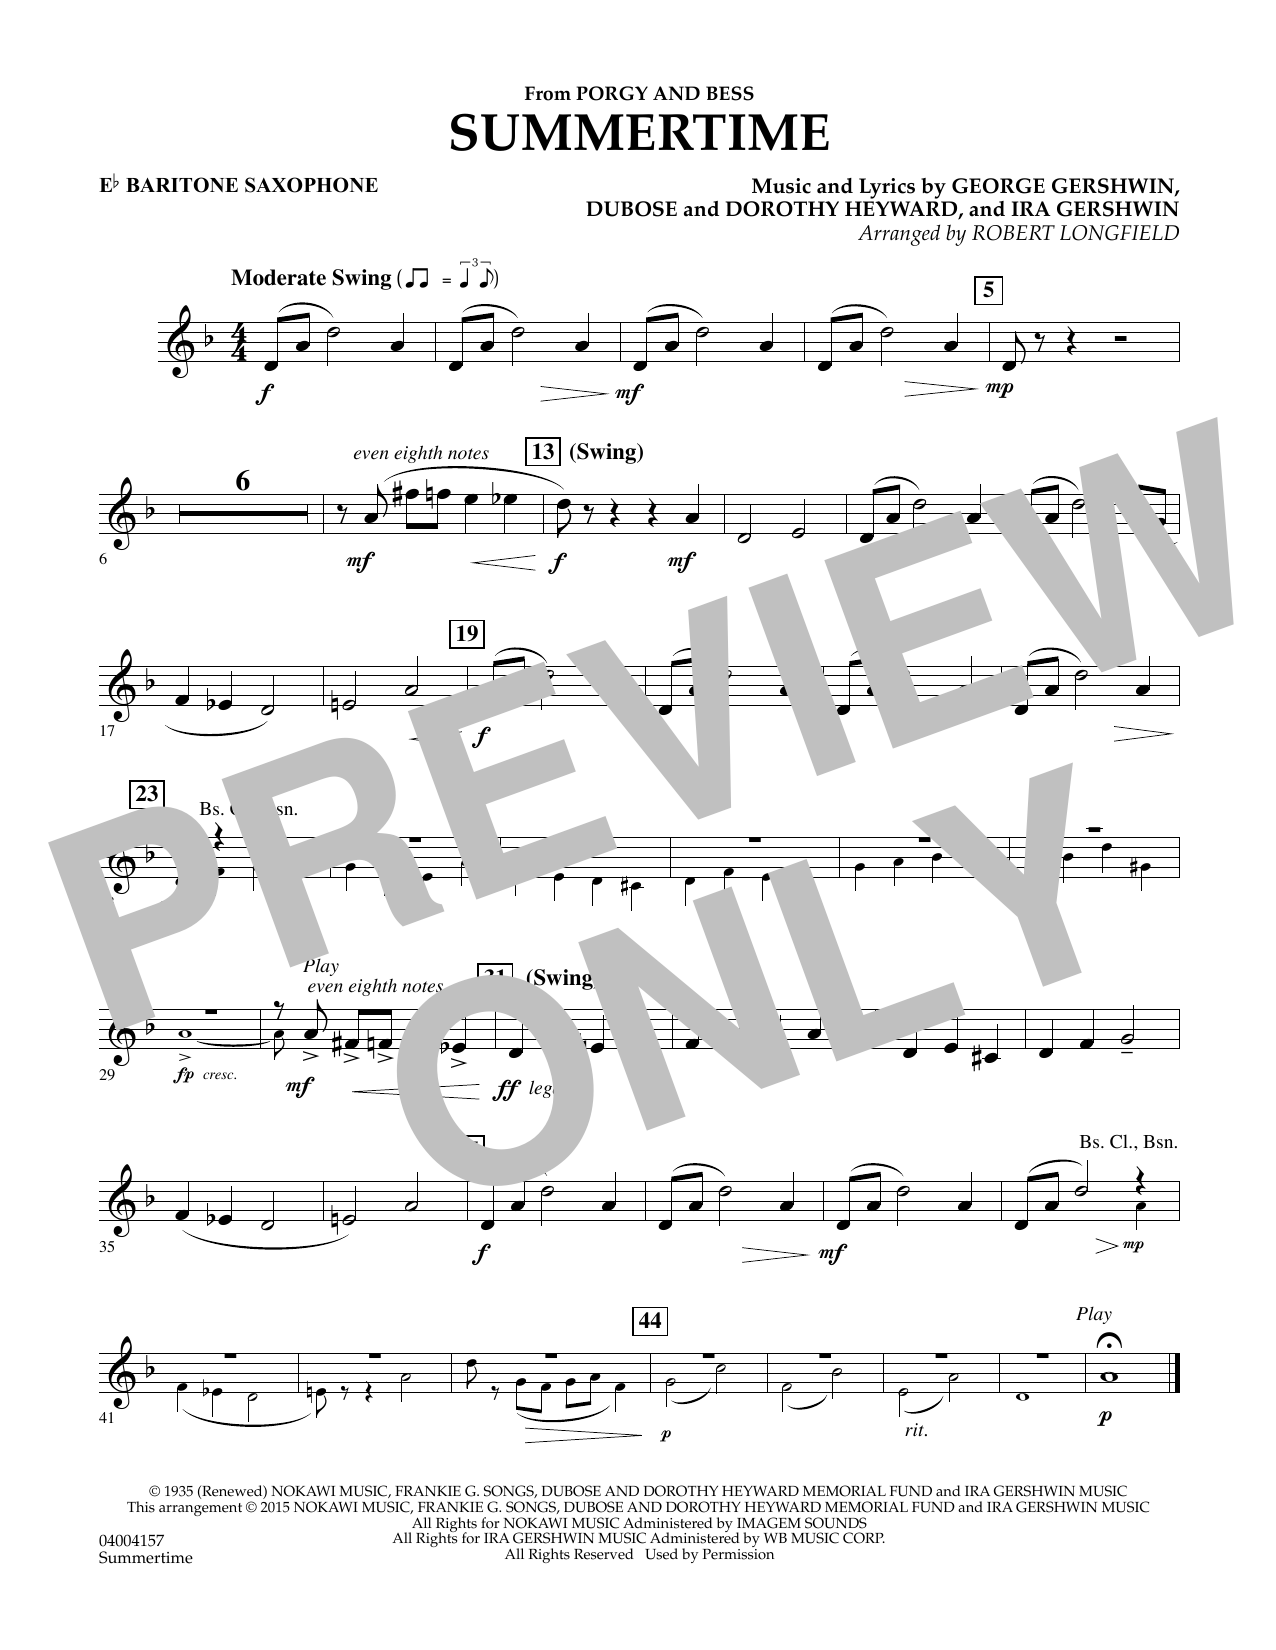 Summertime (from Porgy and Bess) - Eb Baritone Saxophone (Concert Band)